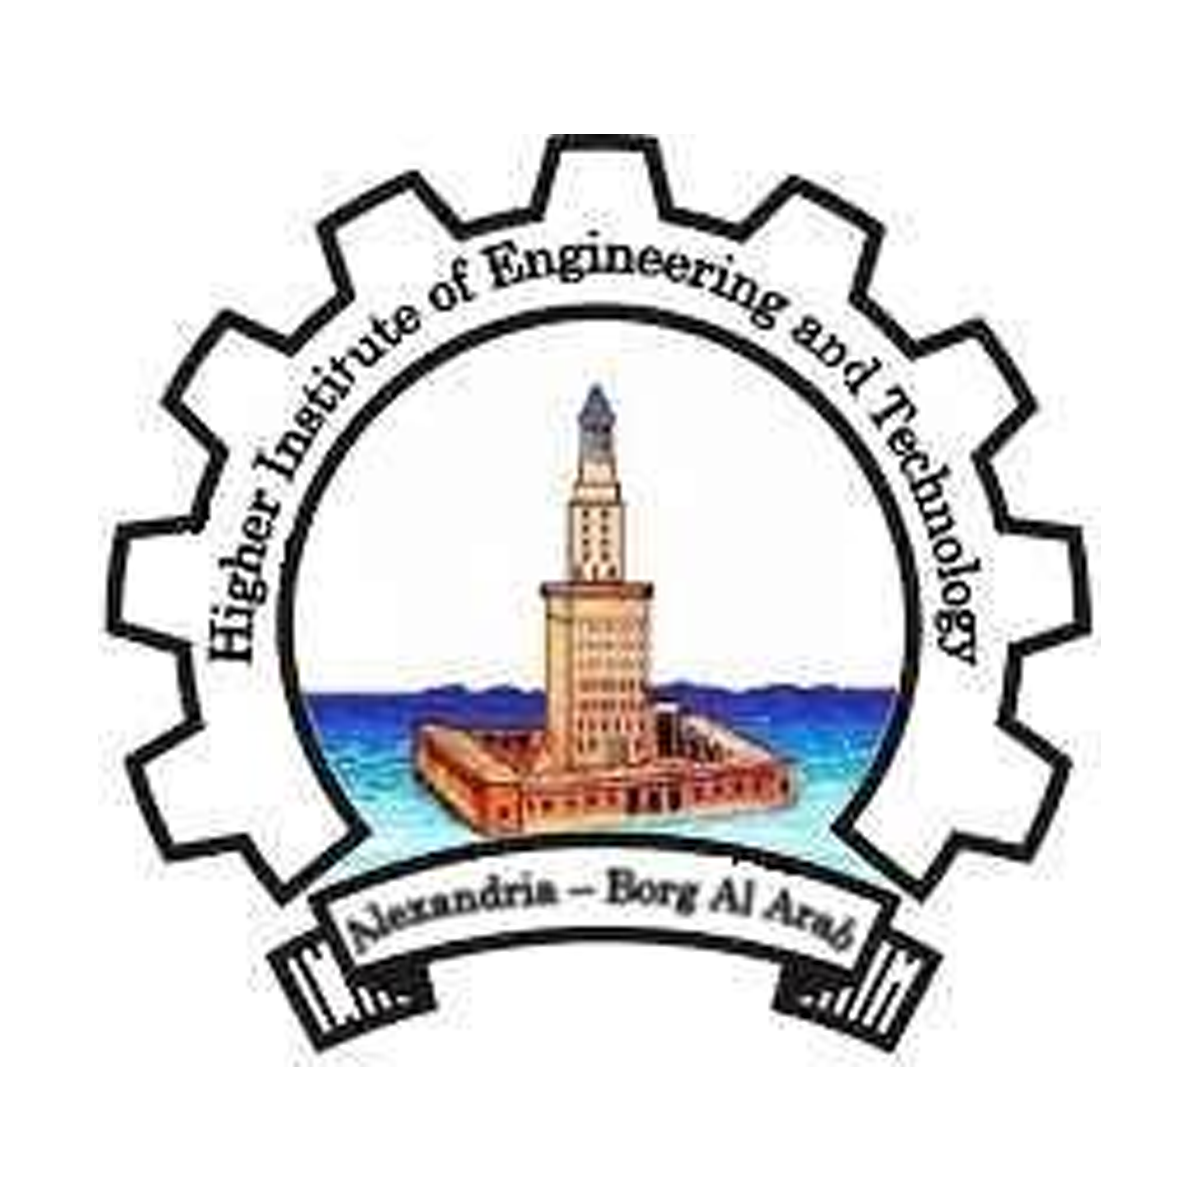 Higher Institute of Engineering and Technology - Burg Al Arab